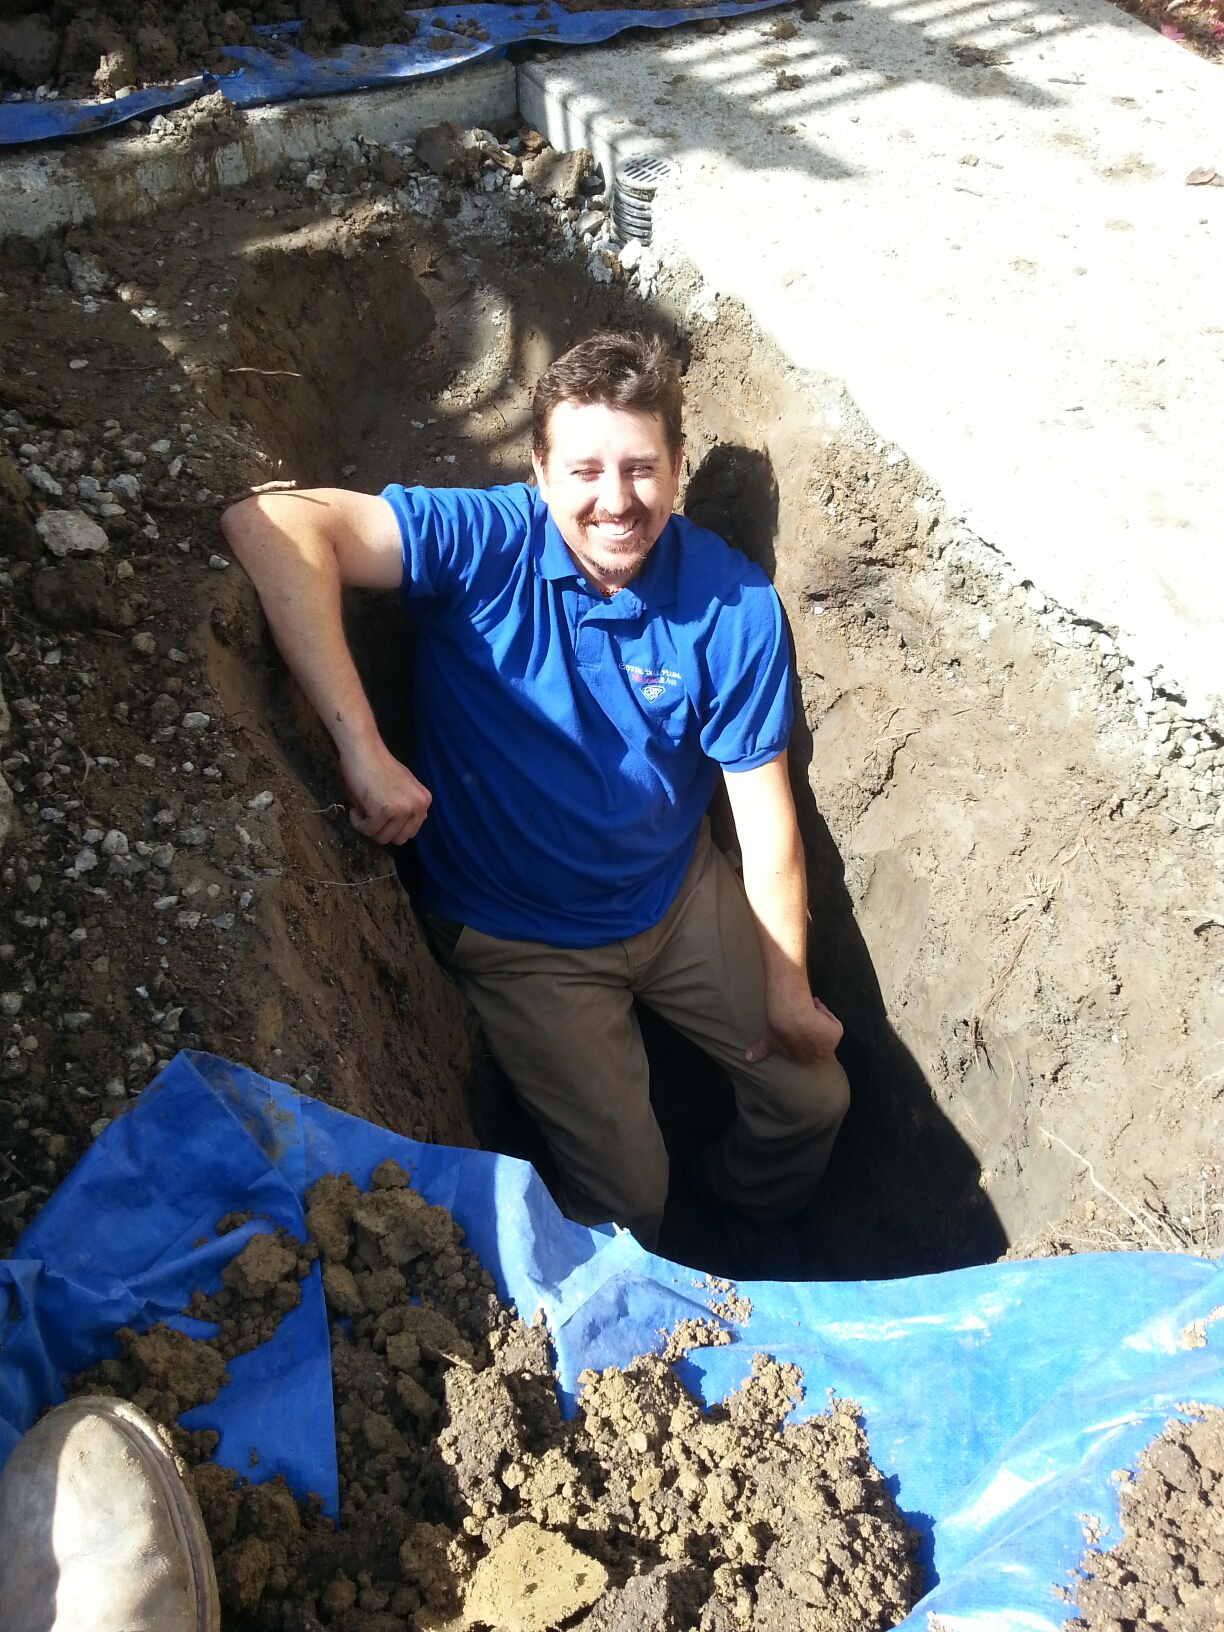 El grove water leak. dig 5 foot hole in a trench to locate a leaky pipe in ground